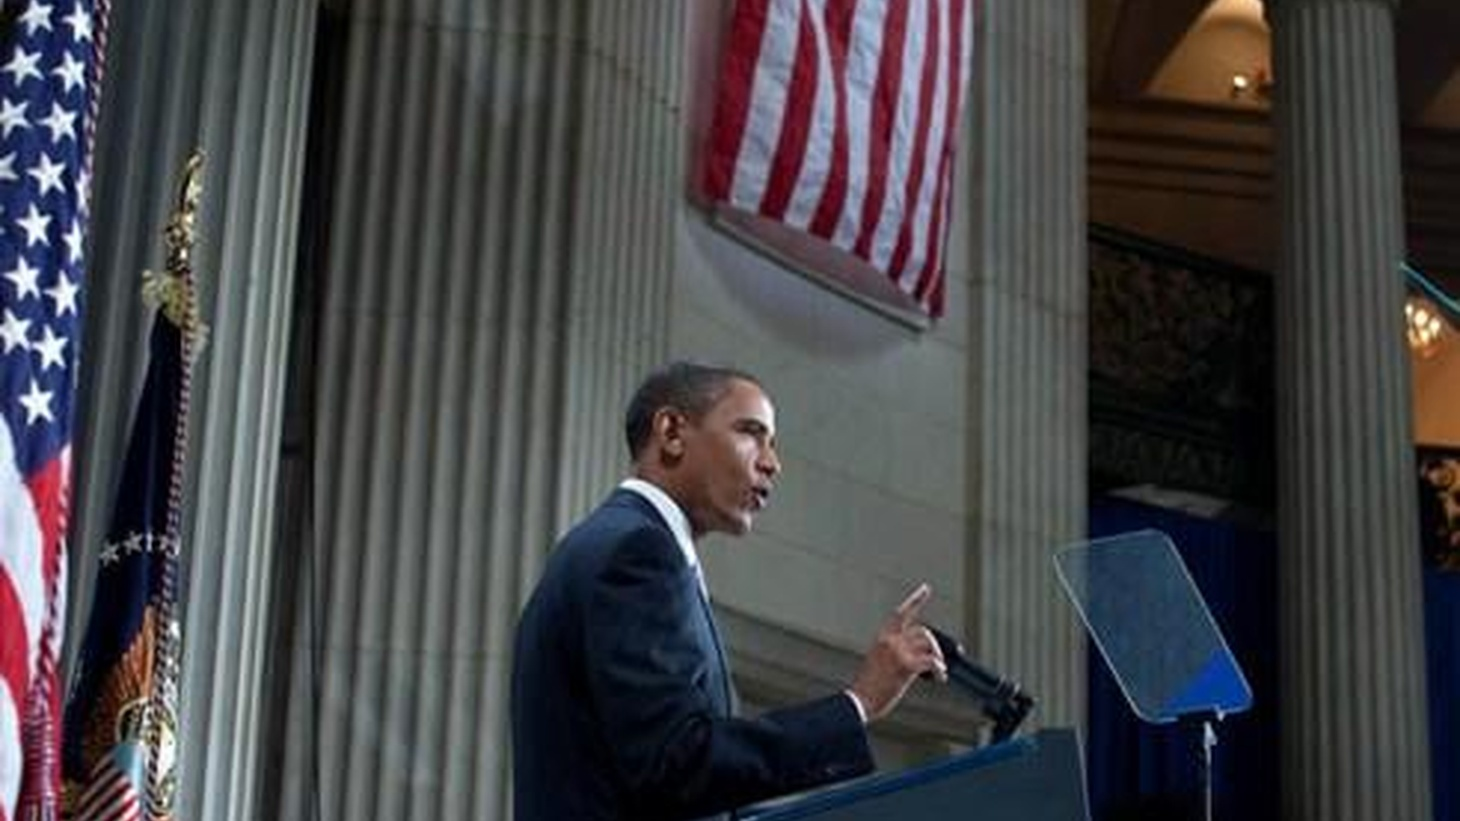 President Obama is on Wall Street this morning to mark the first anniversary of the collapse of Lehman Brothers. The President is expected to outline changes needed to avert a future global crisis like the one that threw the economy into a tailspin.  NPR News will provide live coverage of President Obama's address at 9:10am.